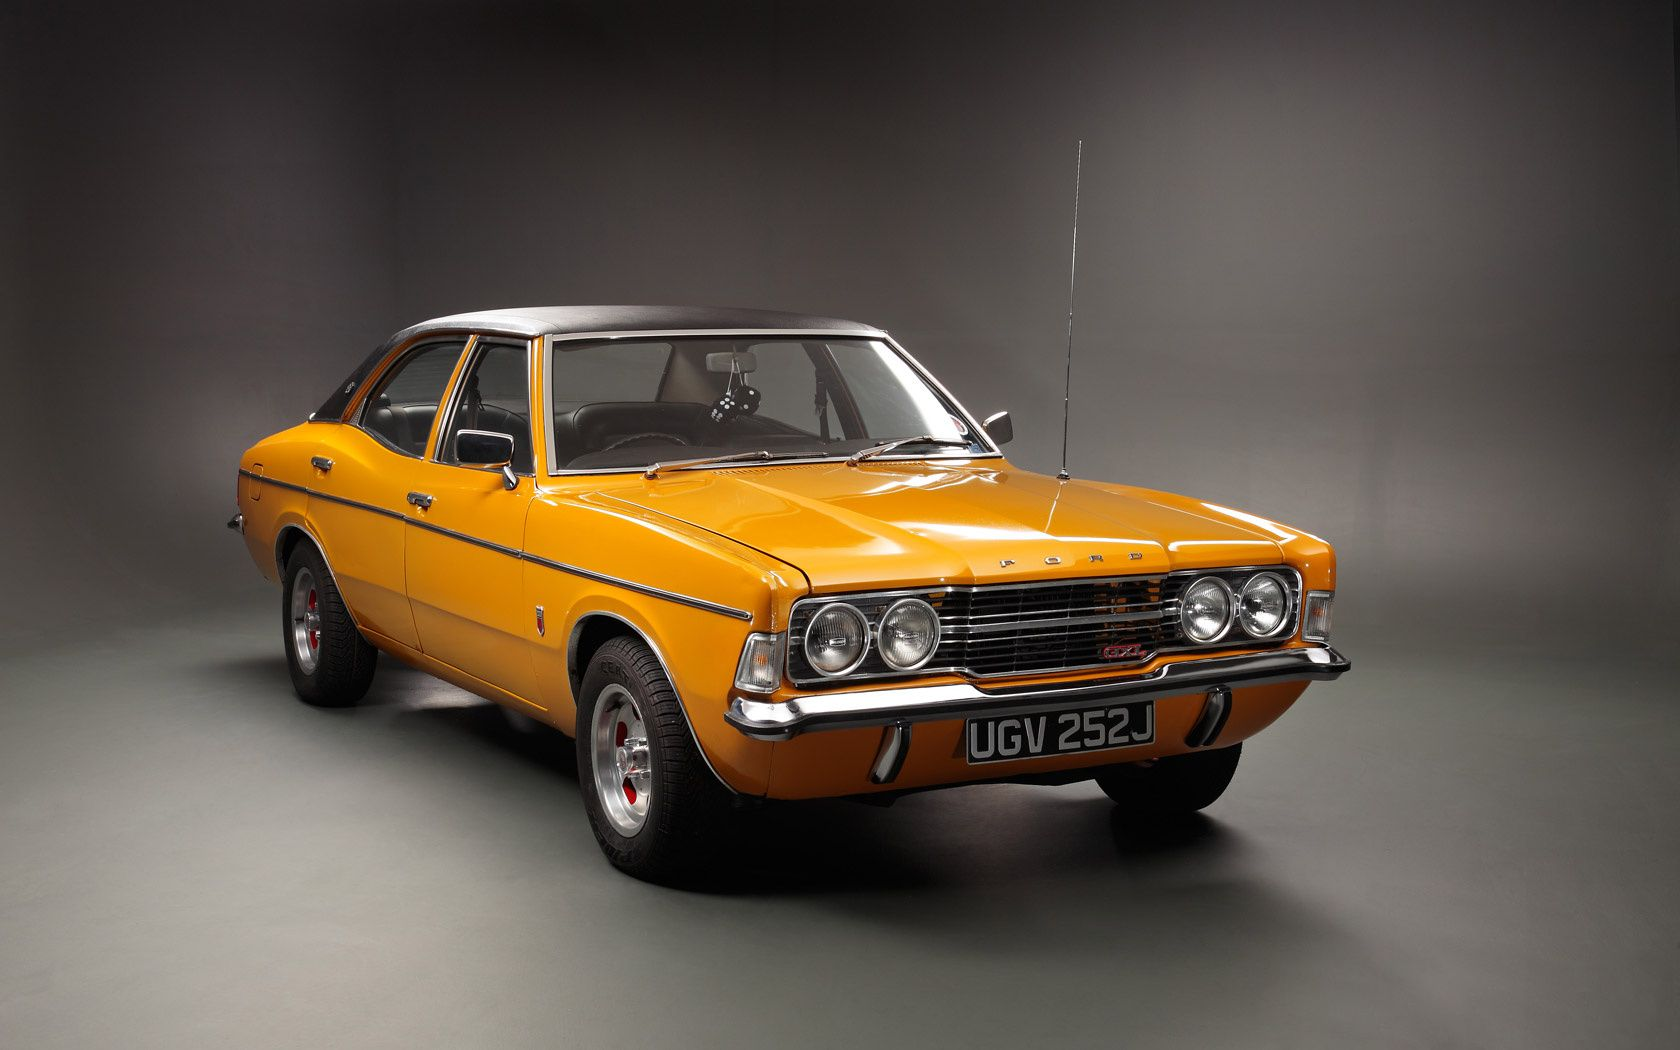 1972 Ford Cortina Still a beauty after all those years